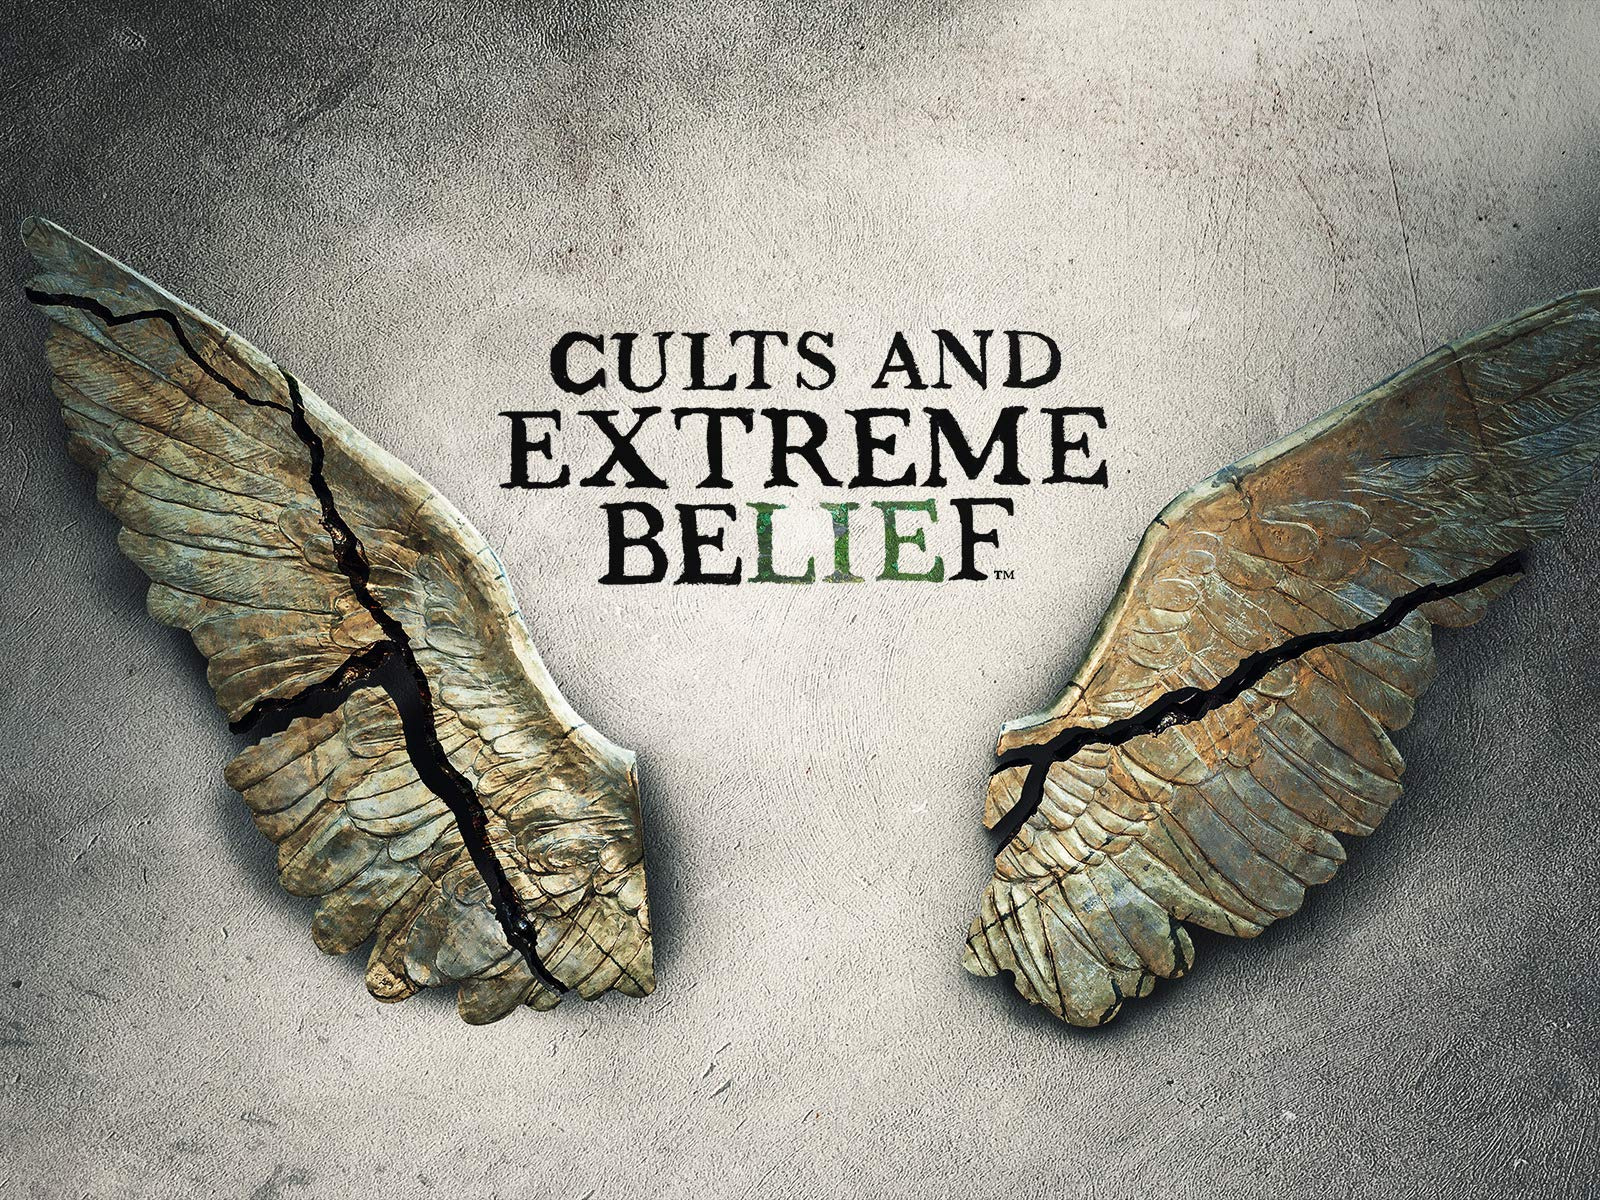 Cults and Extreme Belief - YouTube